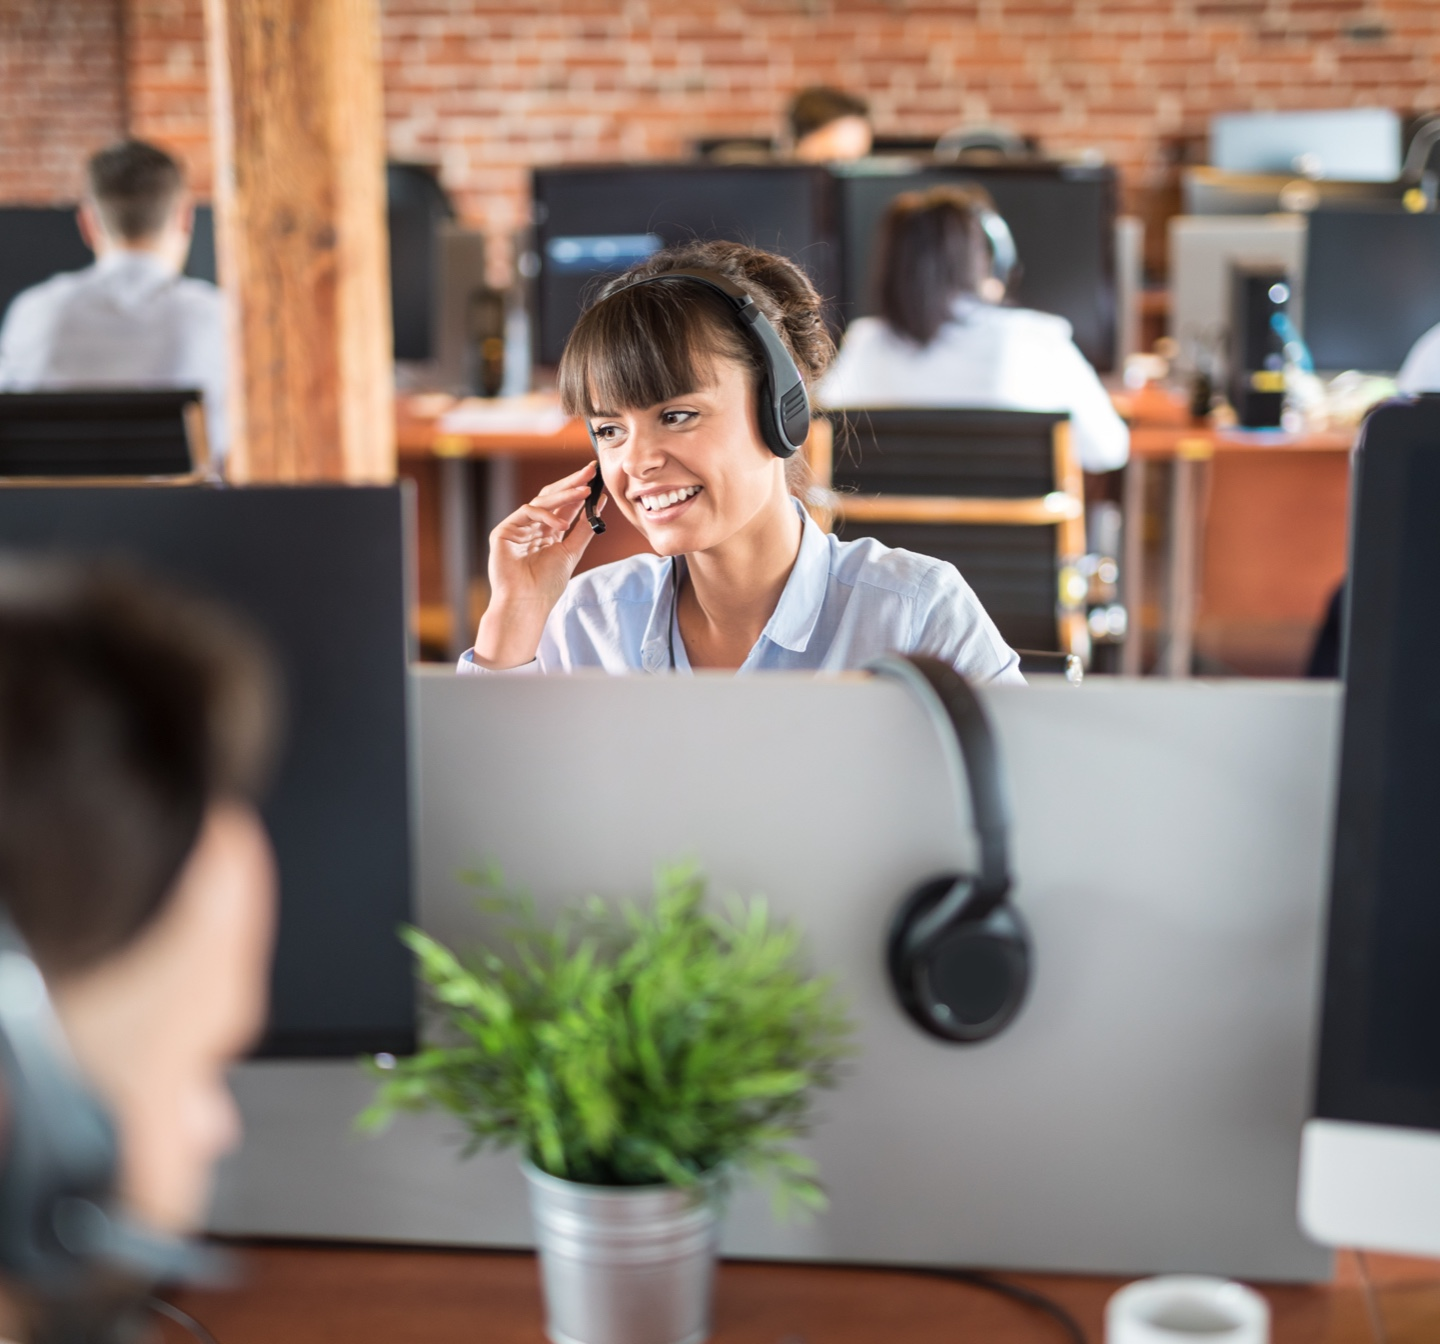 Customer service representative with headset on computer